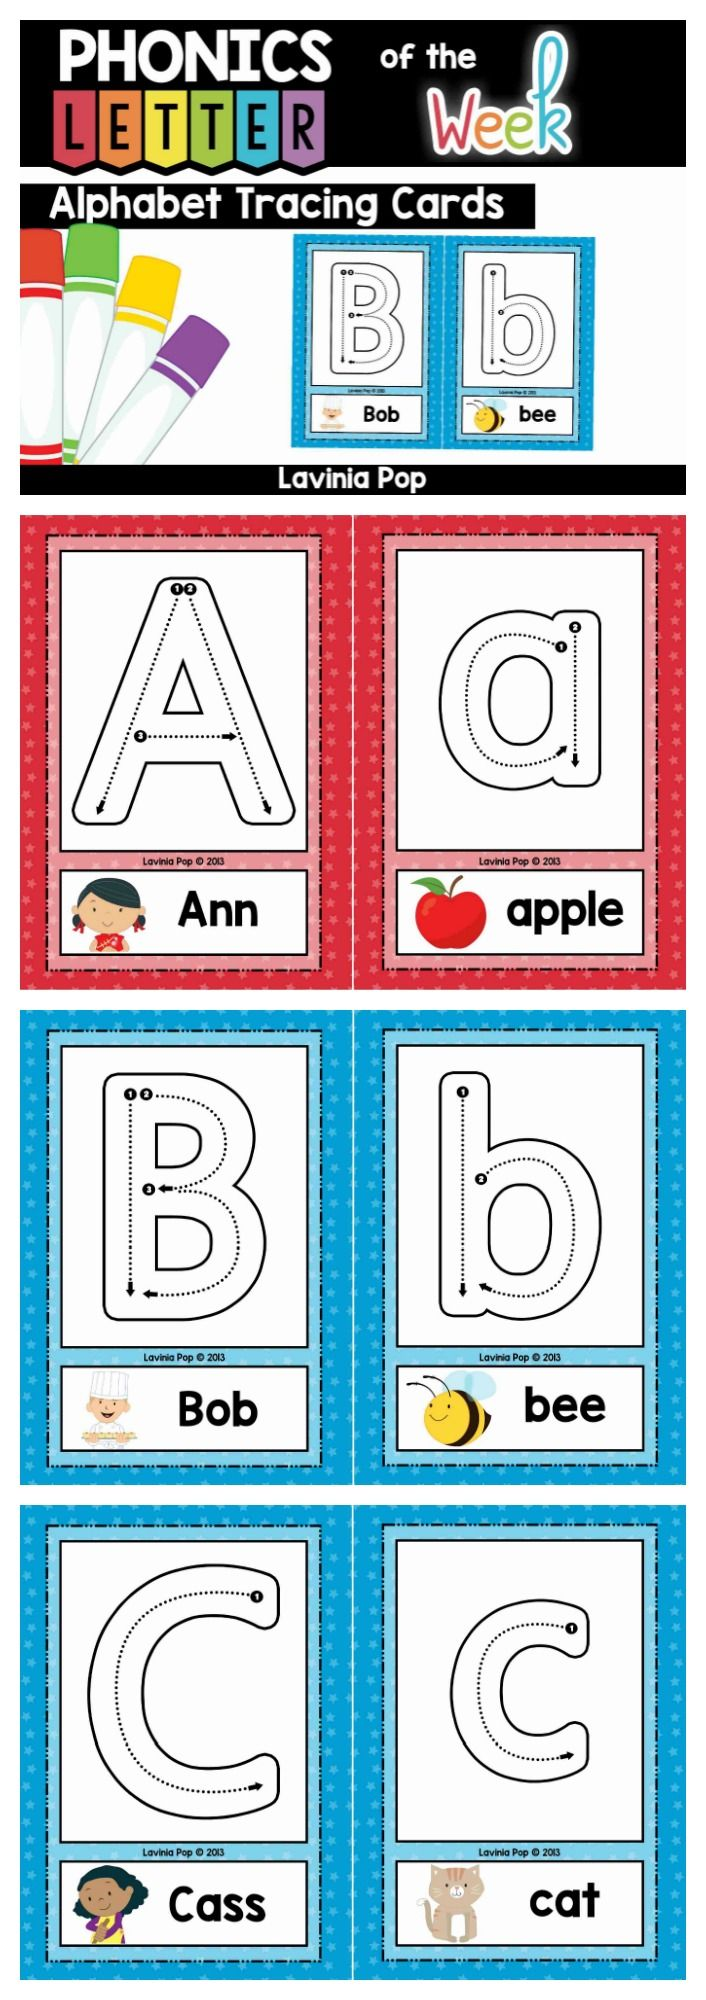 1000 images about letters phonics sight words on pinterest alphabet tracing cards with correct letter formation mitanshu Image collections